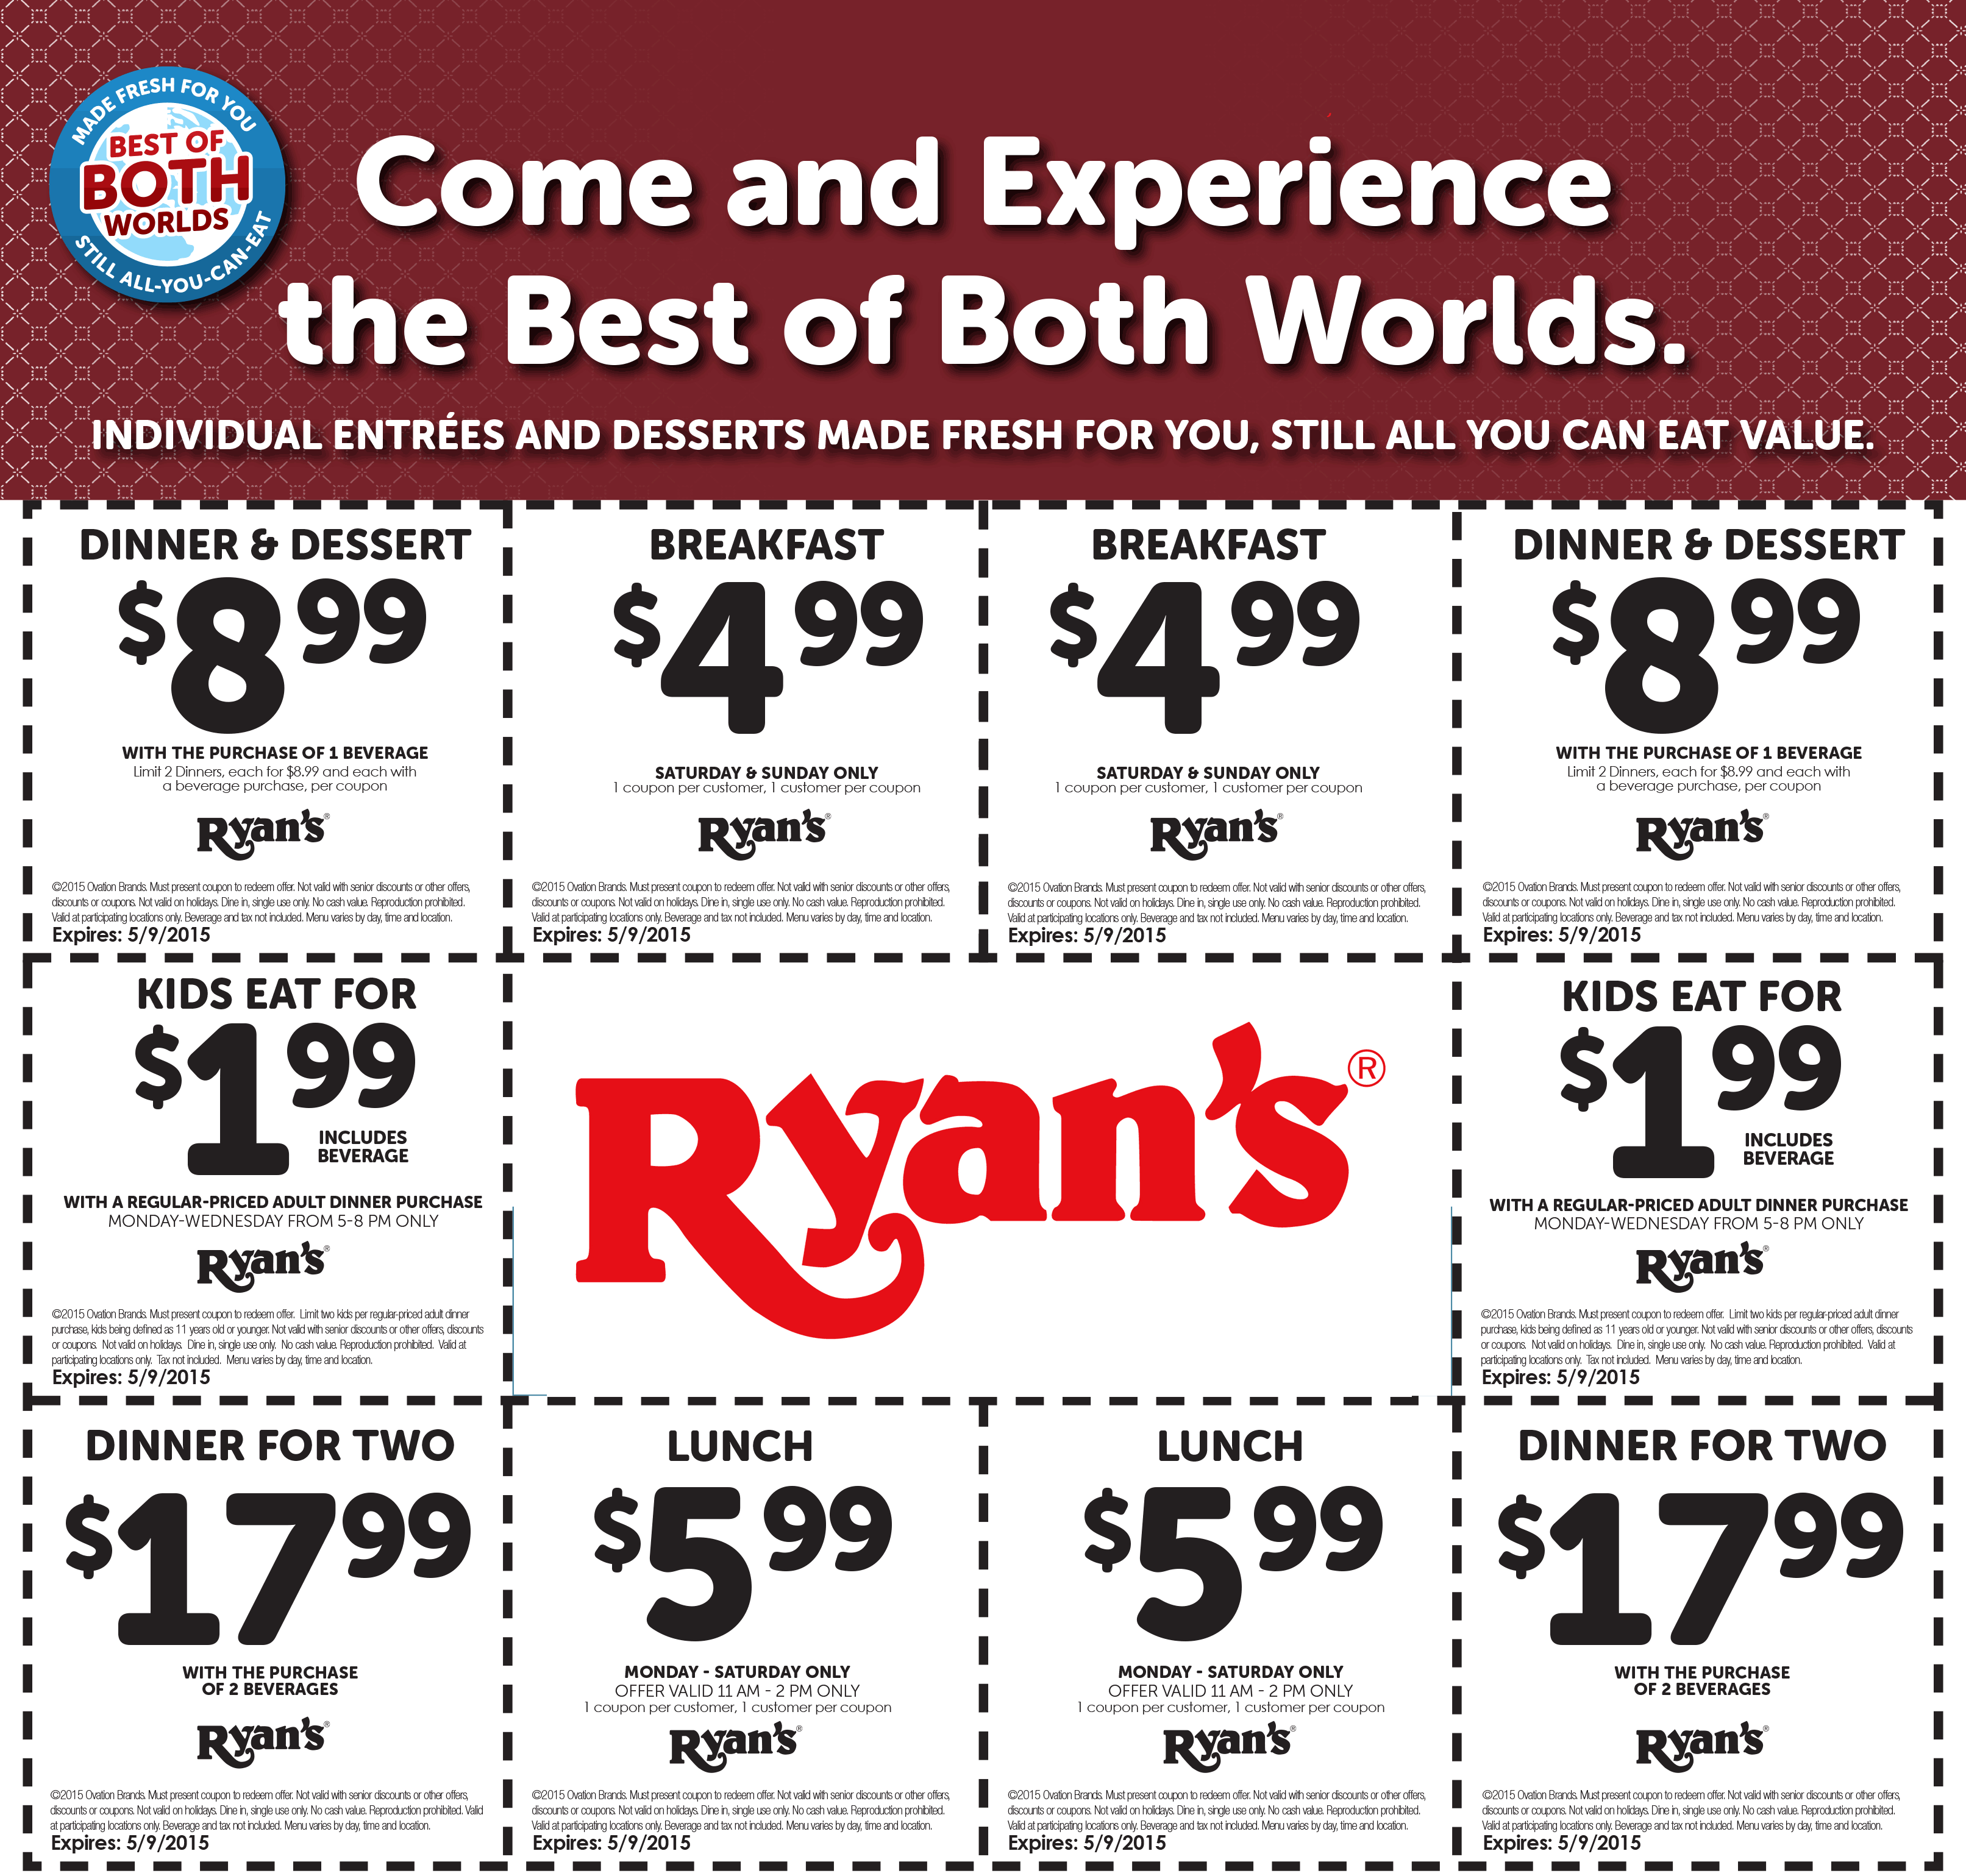 graphic regarding Ryans Printable Coupons known as Ryan buffet coupon : Barnes and noble coupon 2018 retailmenot